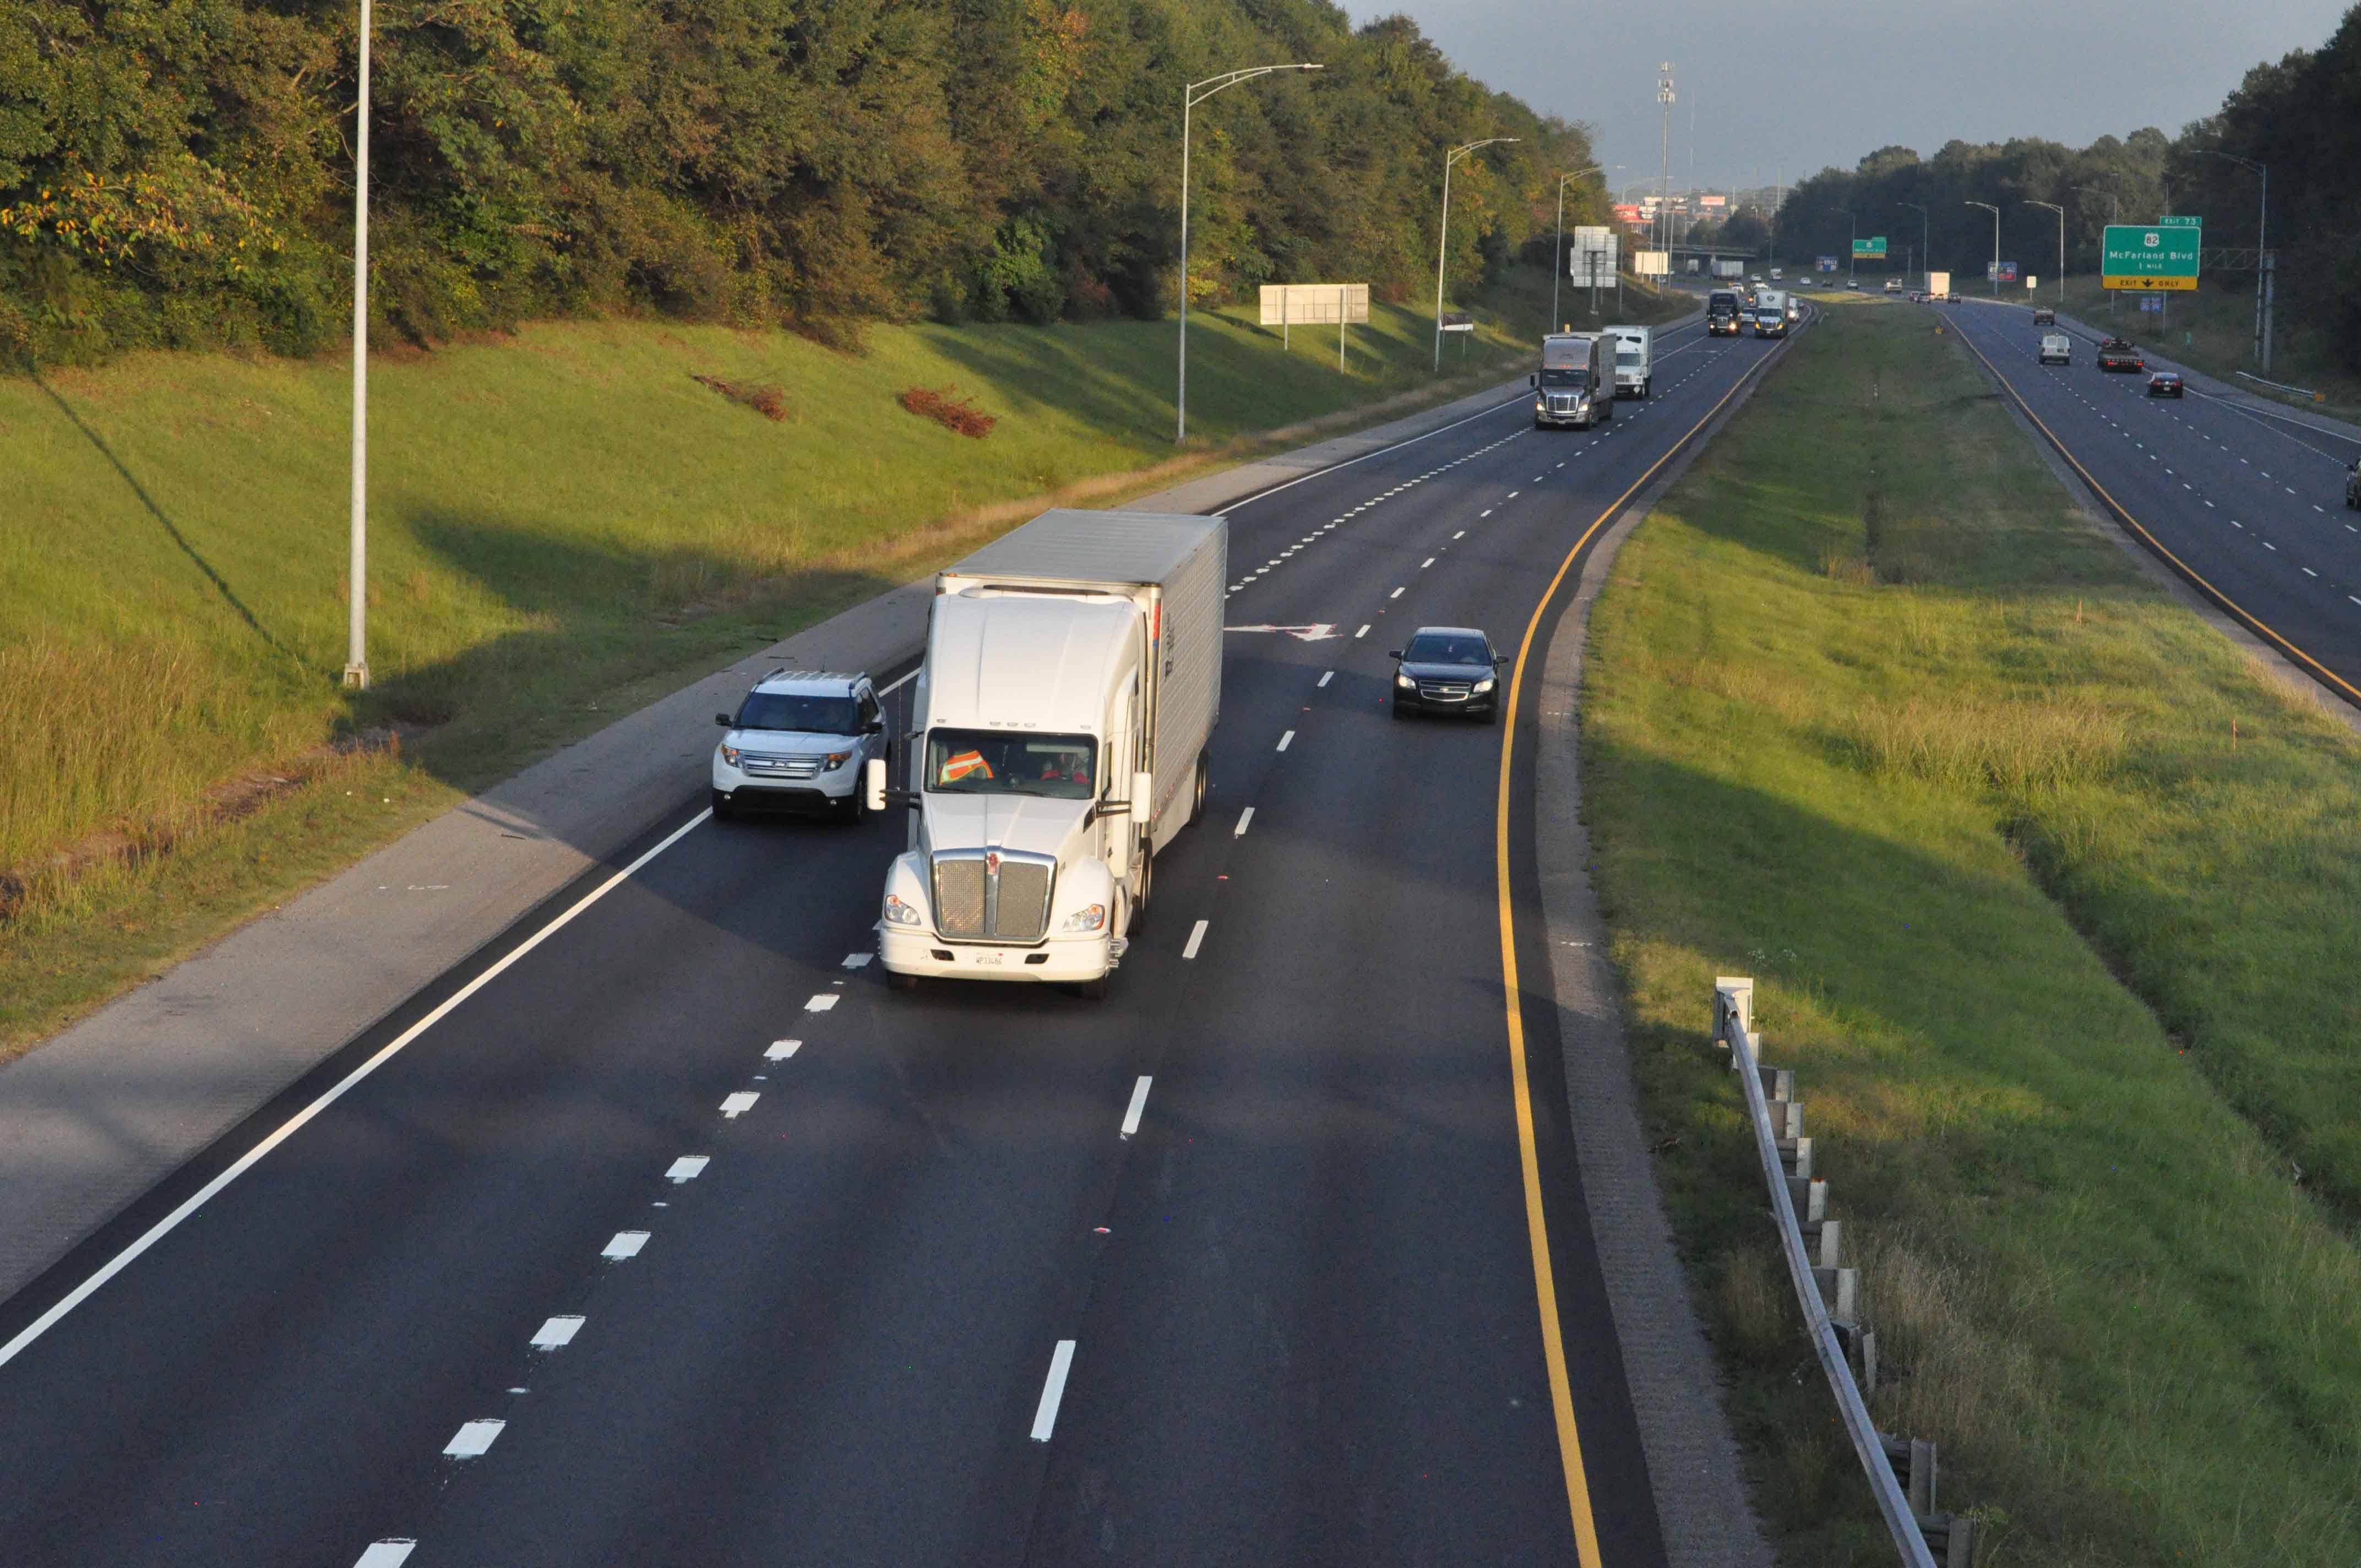 Truck-involved fatality rate falling steadily, ATA says